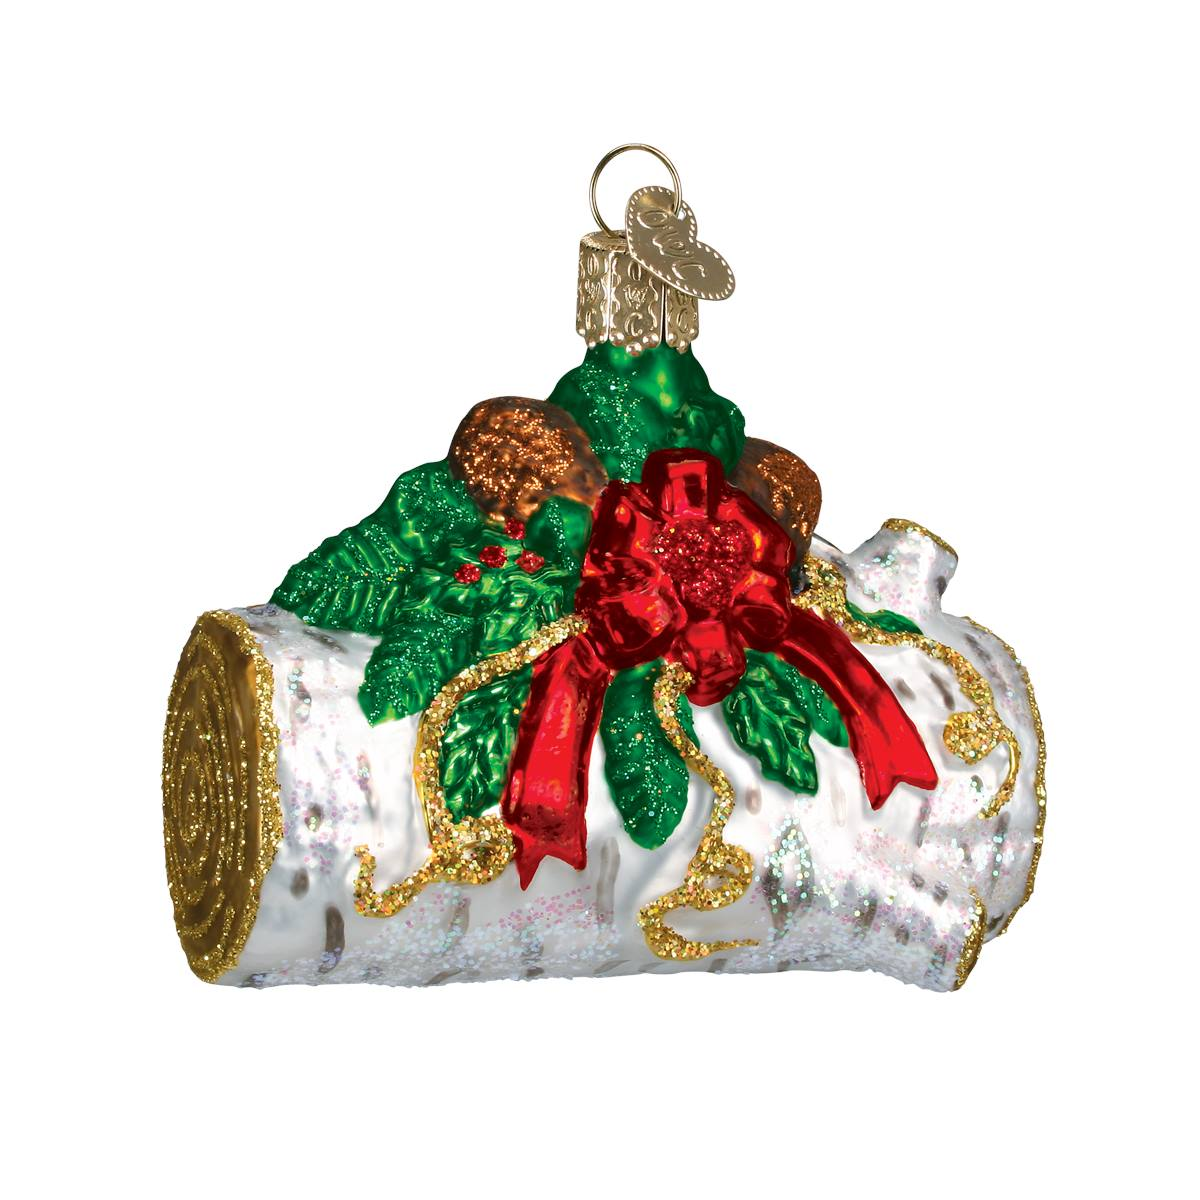 Yule Log Ornament